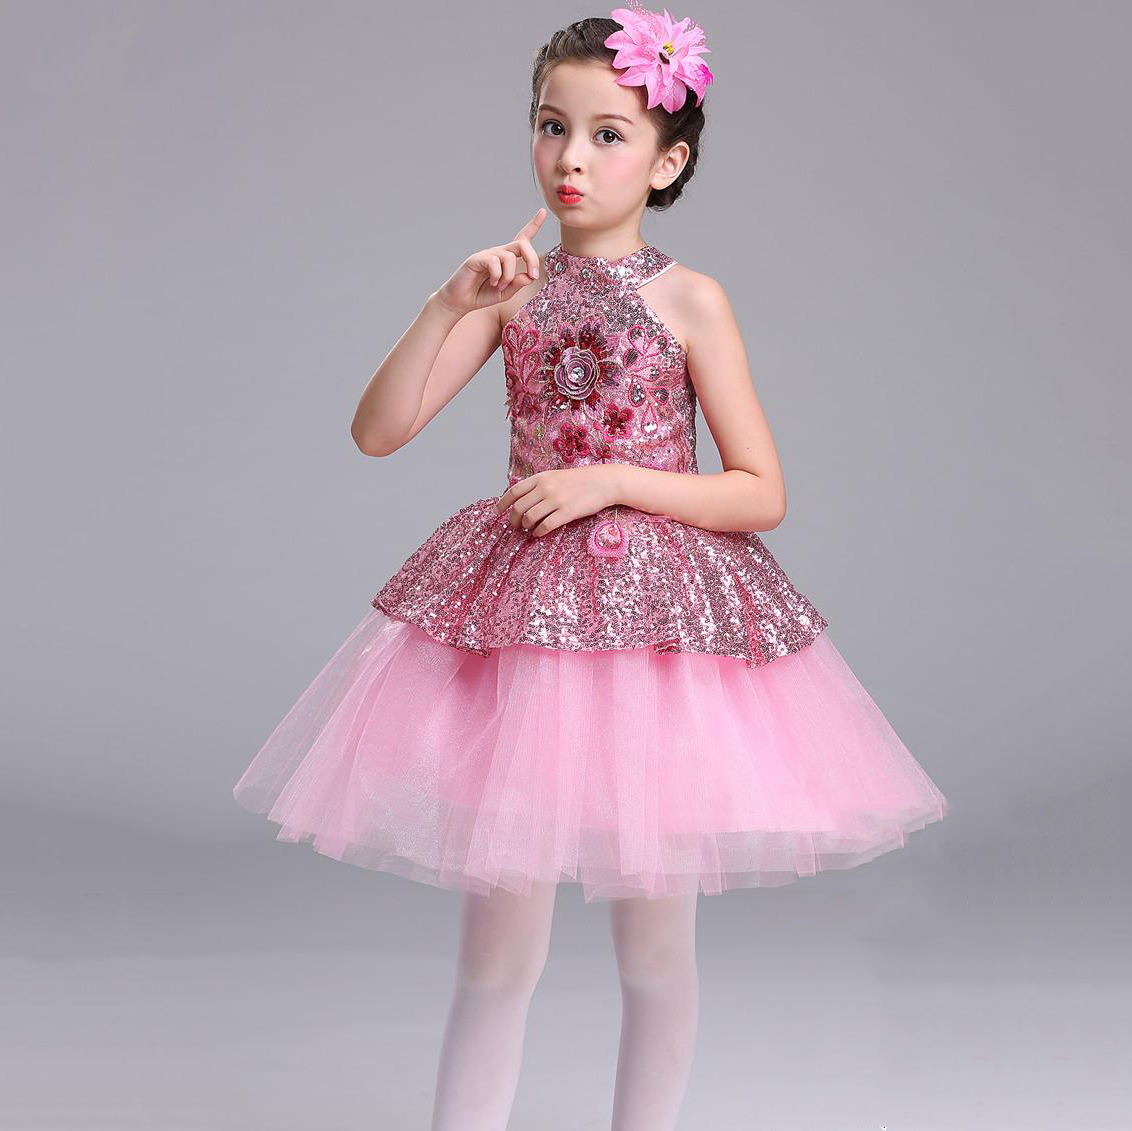 2018 Kids Bling Bling Clothing Ball Gown Prom Dresses Vestidos De ...